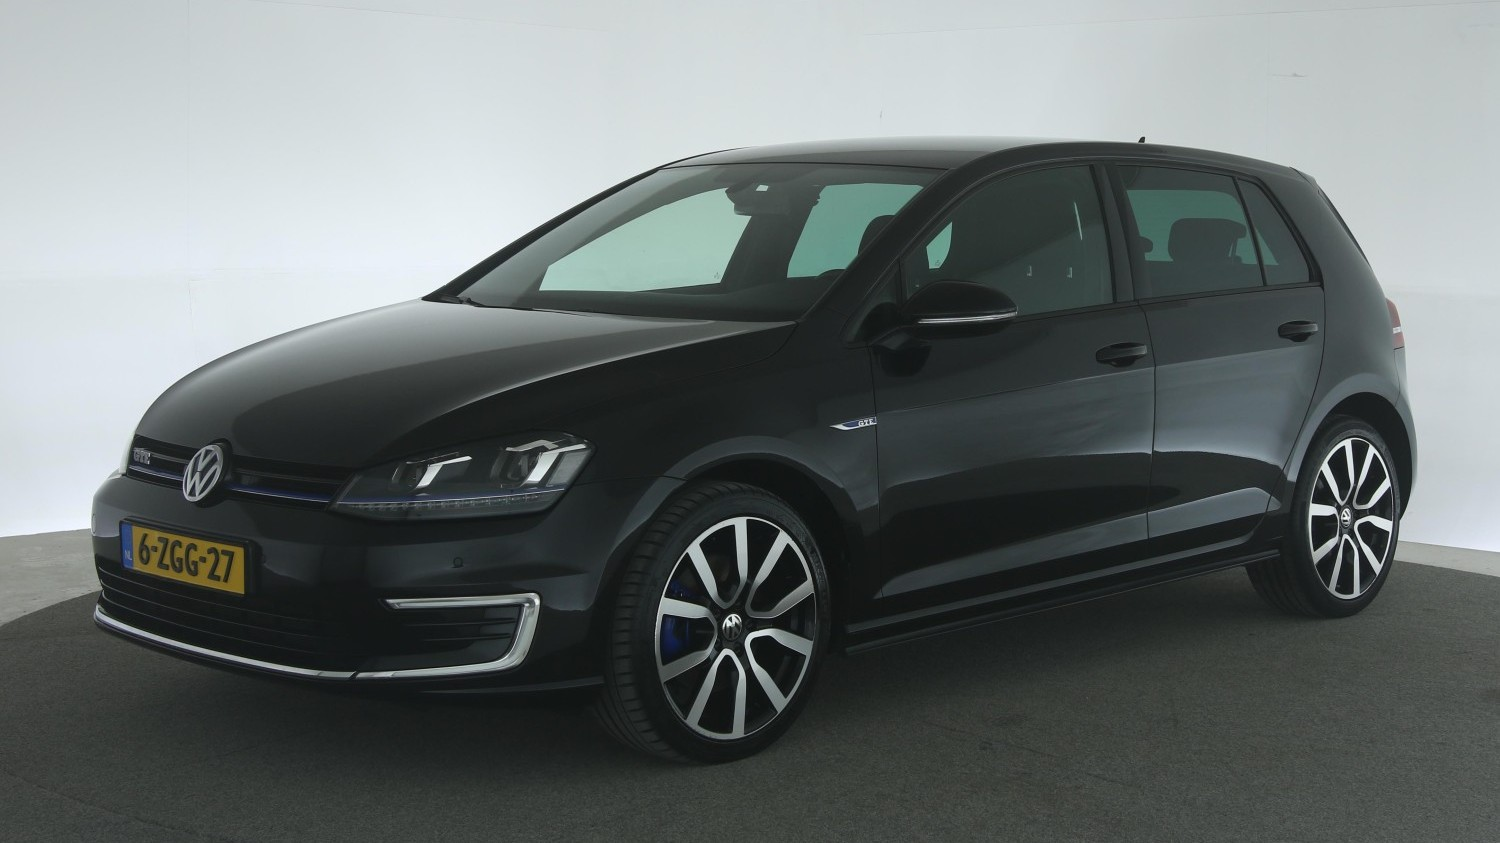 Volkswagen Golf Hatchback 2015 6-ZGG-27 1